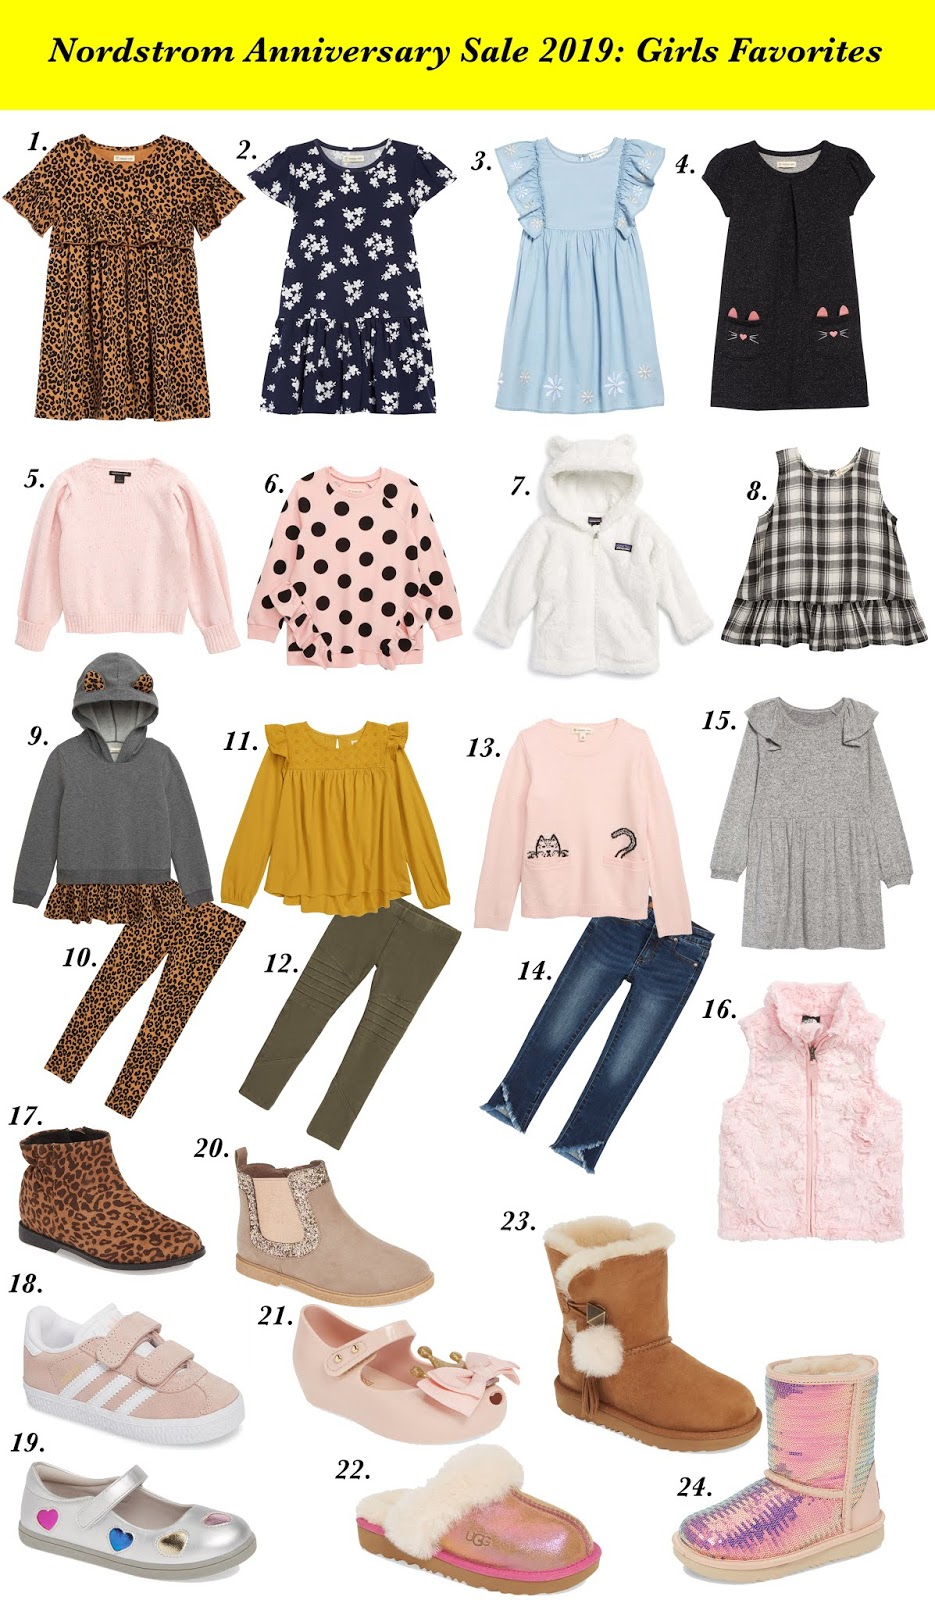 Nordstrom Anniversary Sale 2019: Picks for Kids - Something Delightful Blog